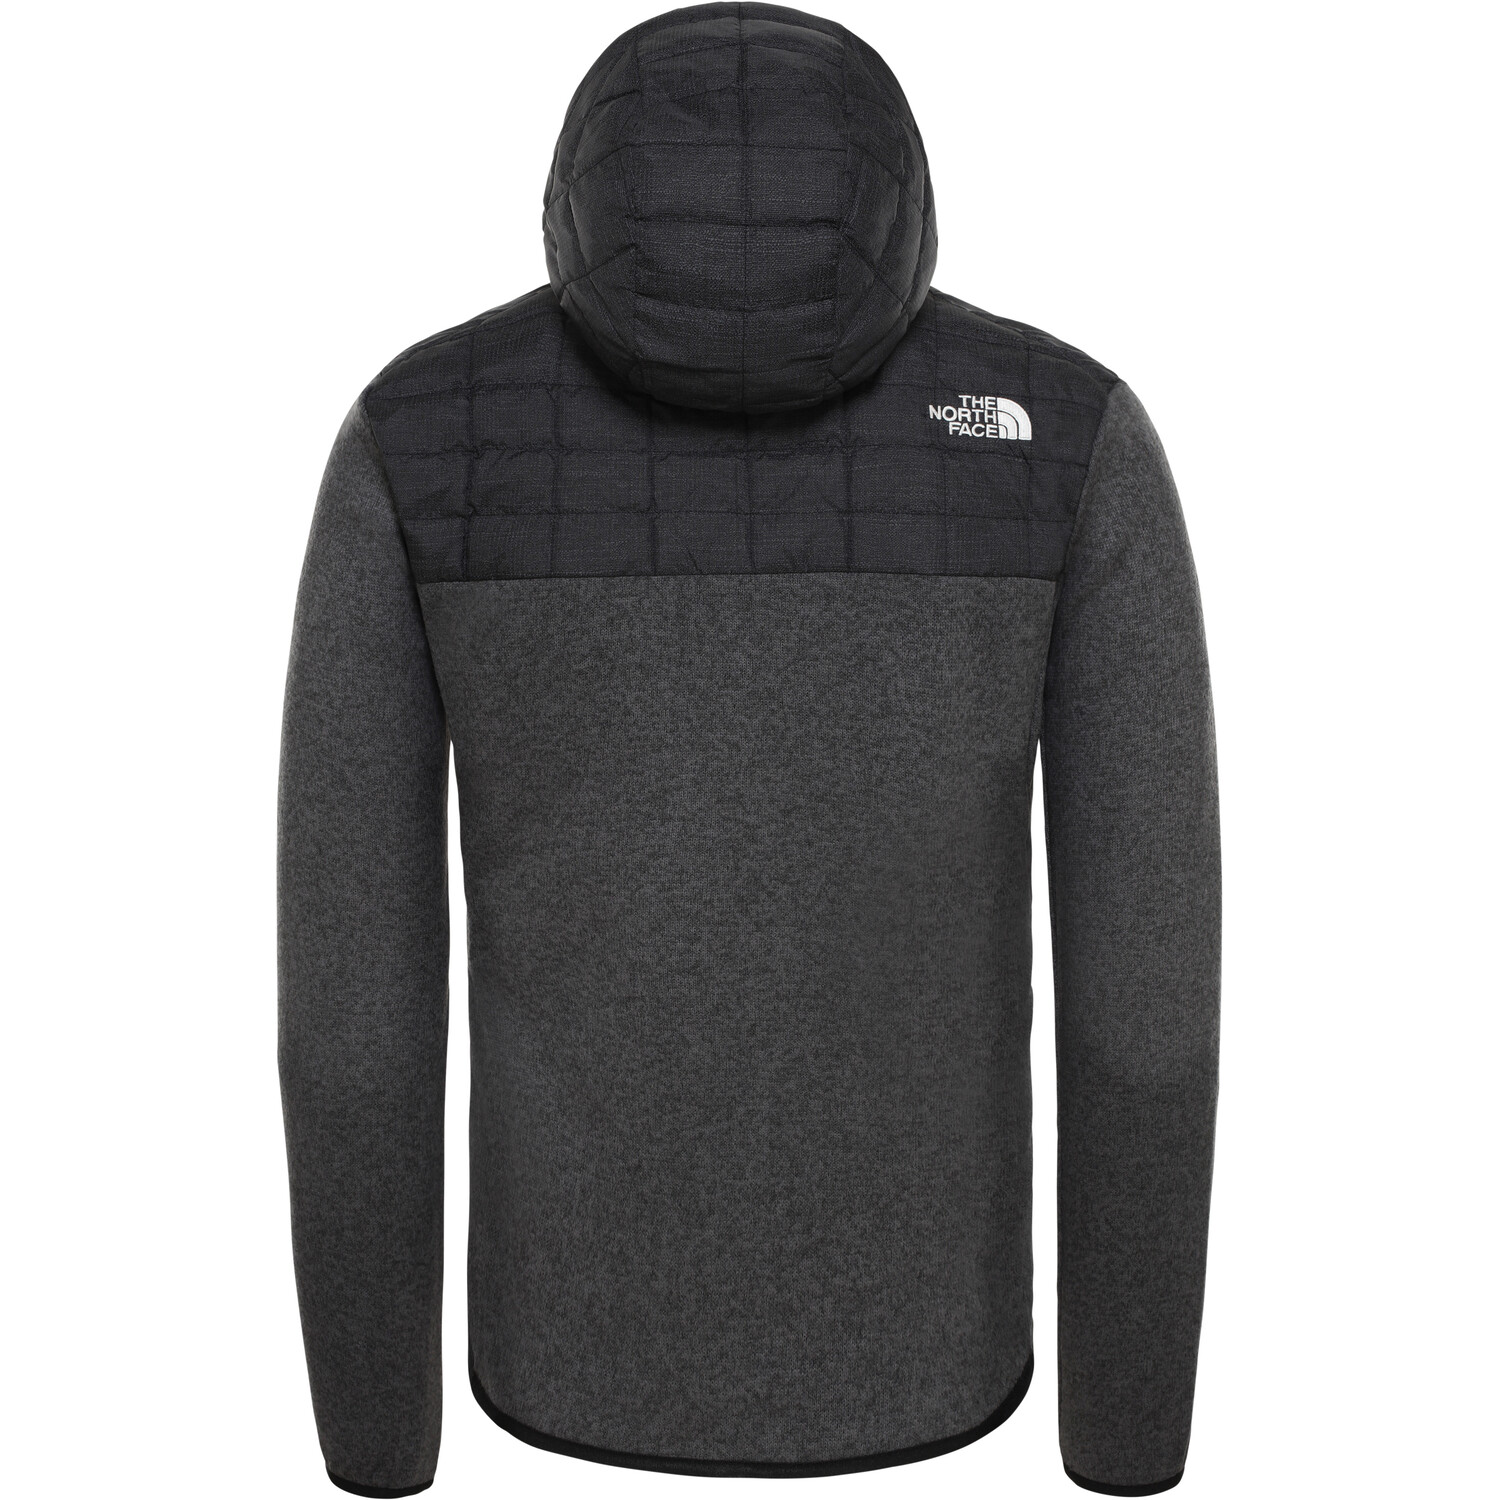 The North Face ThermoBall Gordon Lyons Hoodie Jacke Herren tnf black/graph grey/dk grey heather